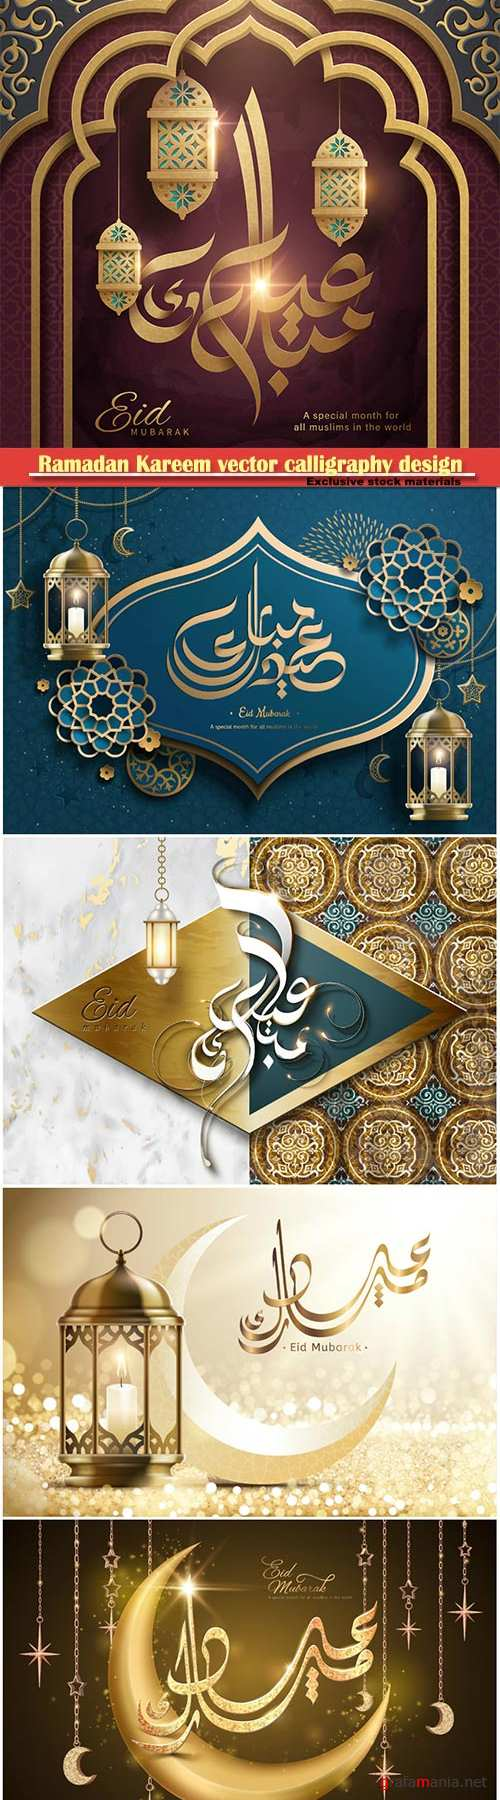 Ramadan Kareem vector calligraphy design with decorative floral pattern, mosque silhouette, crescent and glittering islamic background # 33